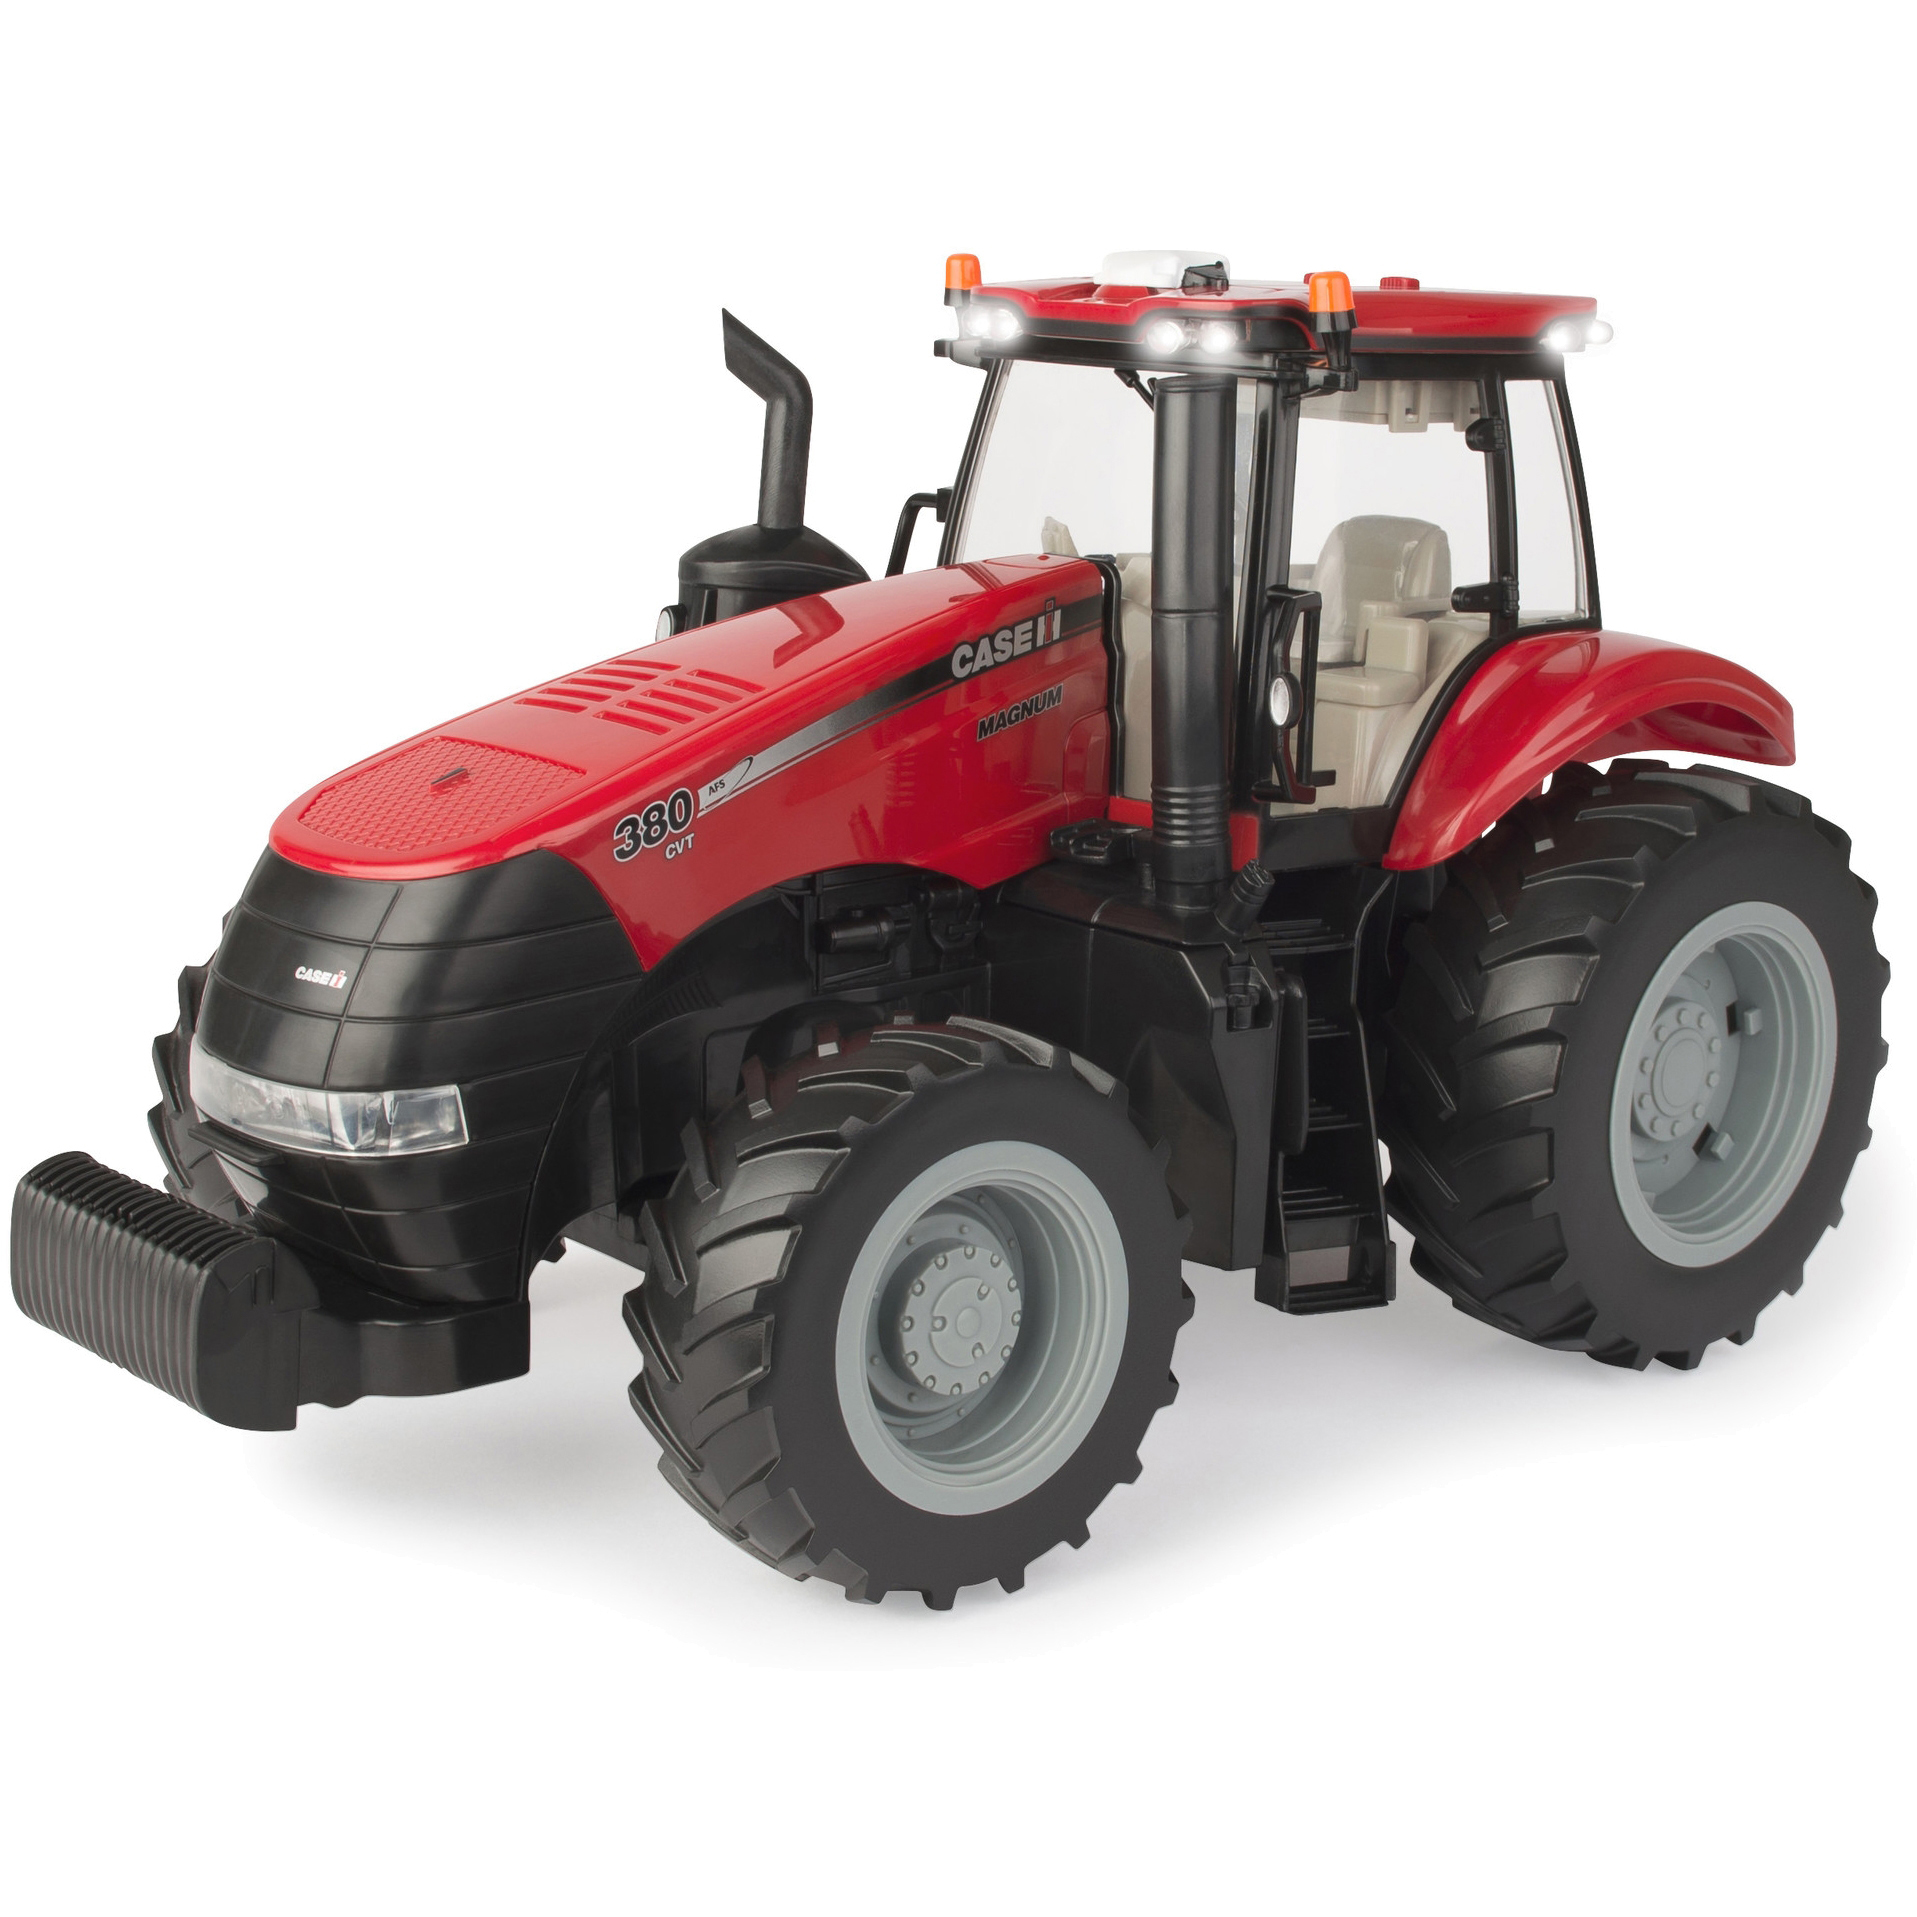 TOMY ERTL Case IH Big Farm 380CVT Magnum Tractor by TOMY